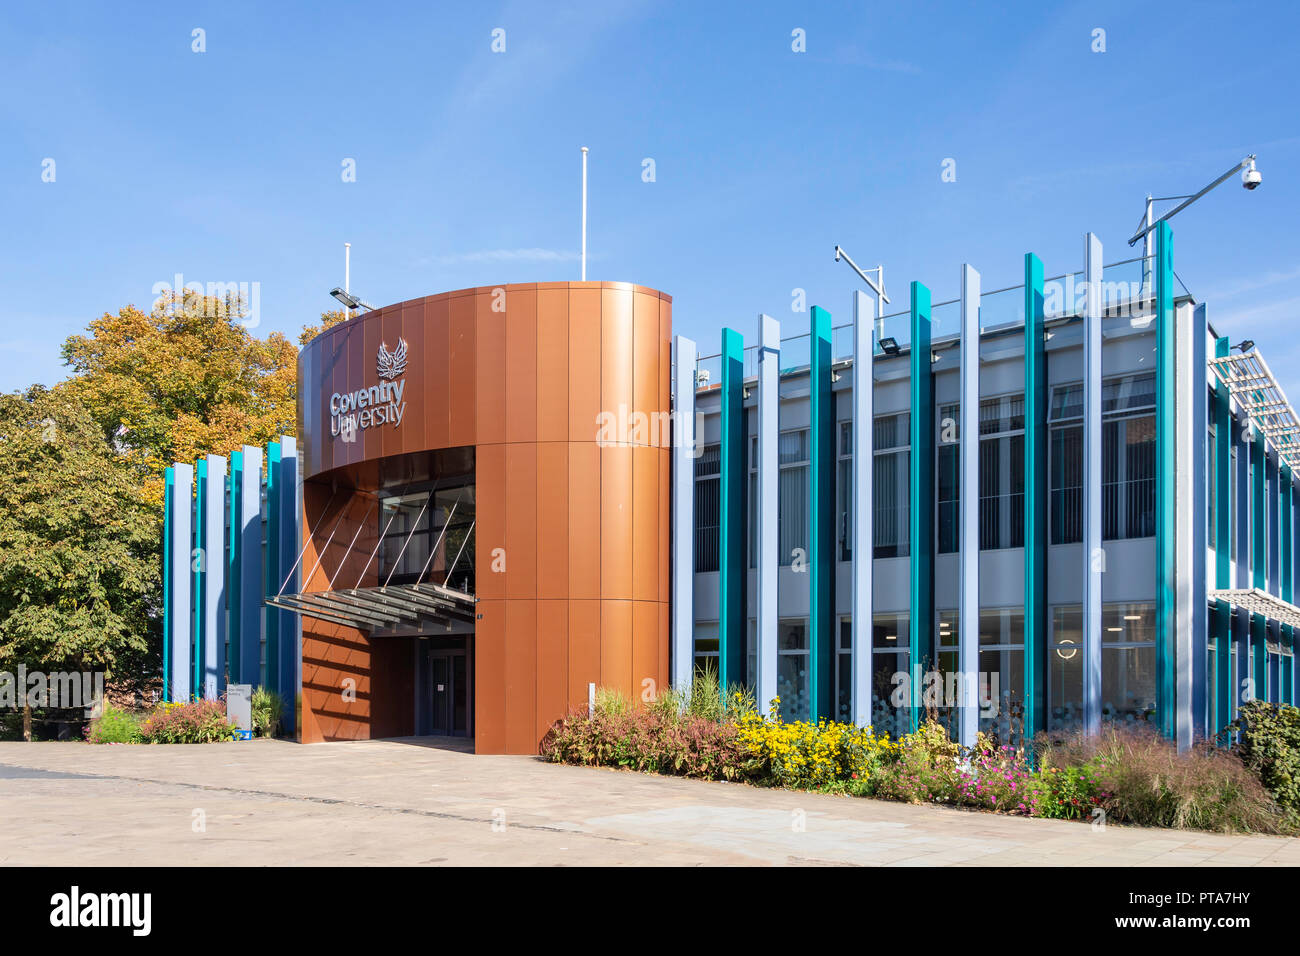 Alan Berry Building, Coventry University, Priory Street, Coventry, West Midlands, England, United Kingdom - Stock Image